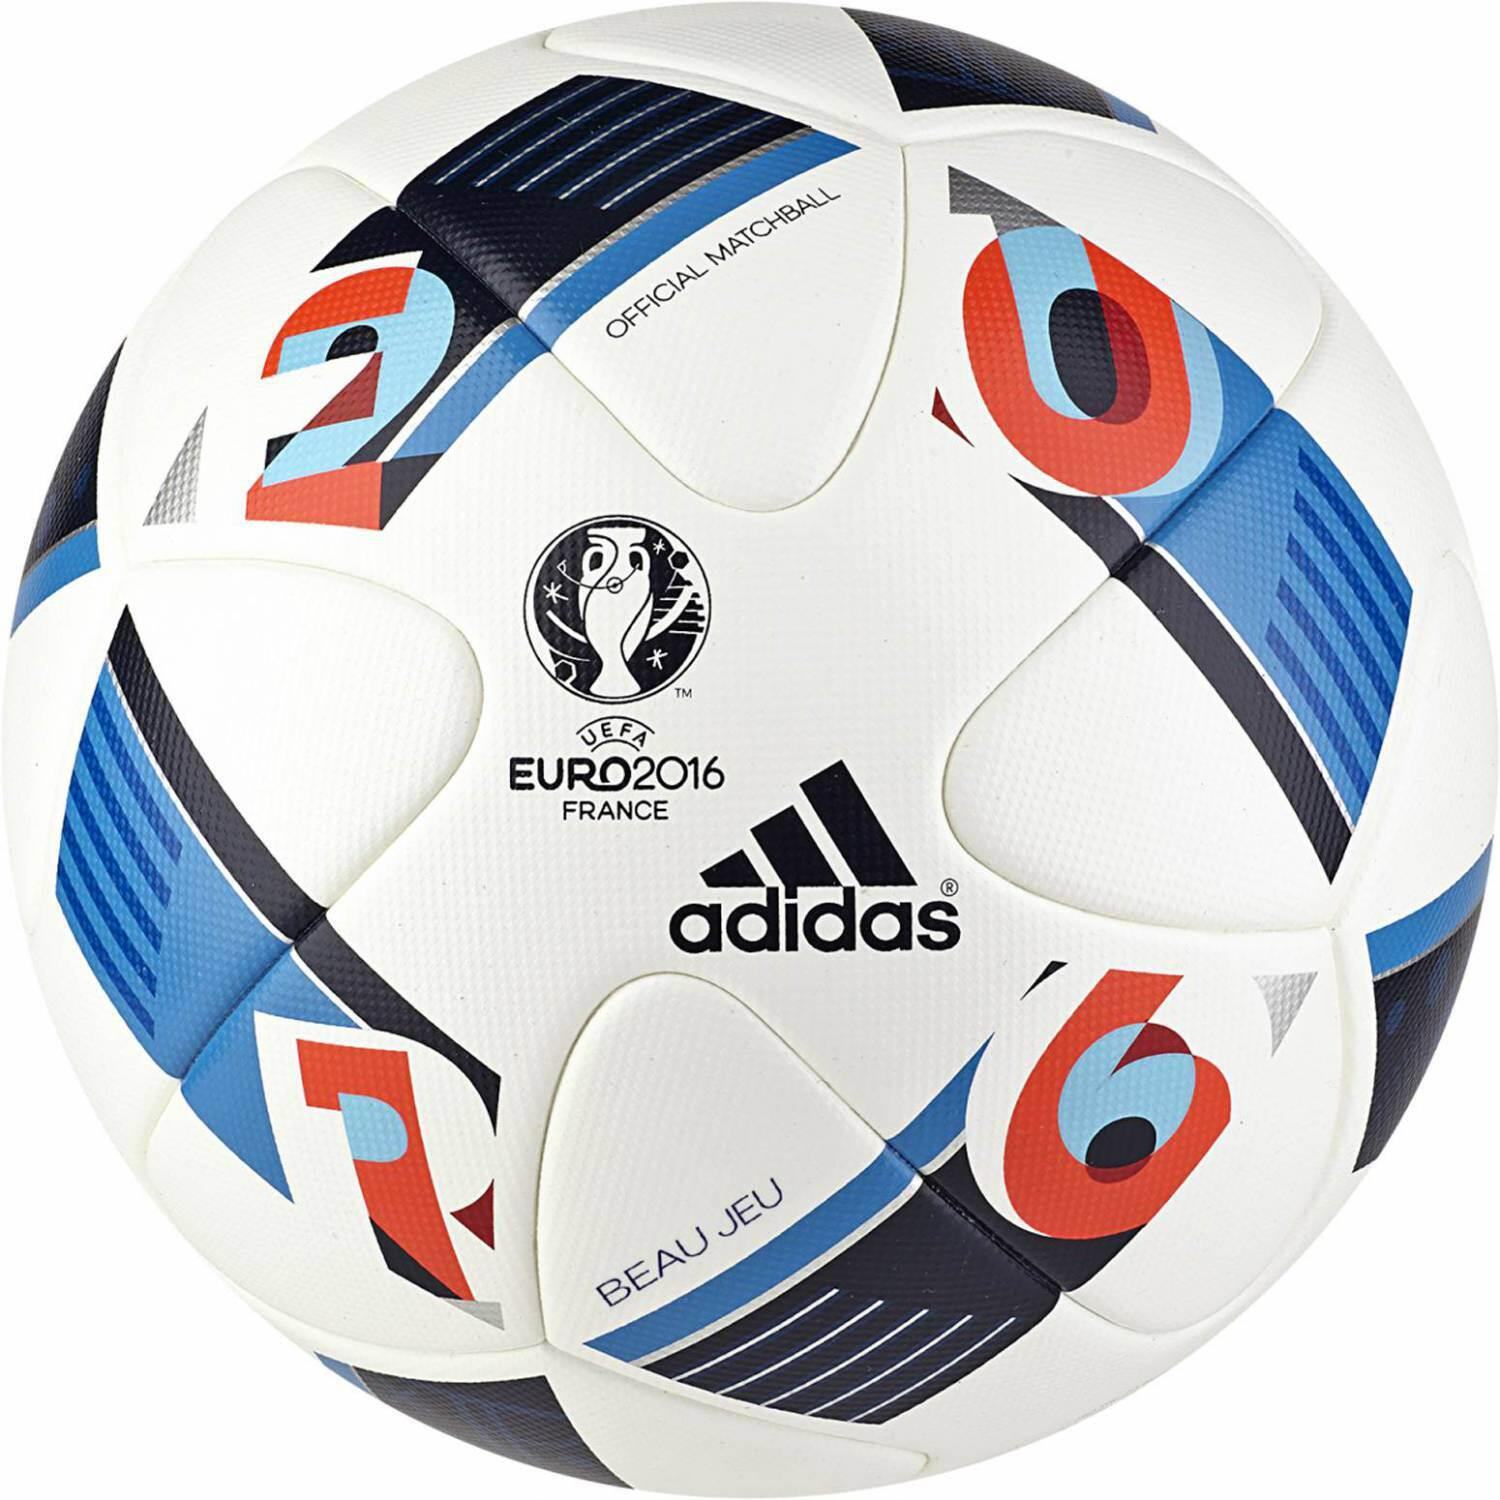 adidas-euro-2016-spielball-gr-ouml-szlig-e-5-white-bright-blue-night-indigo-